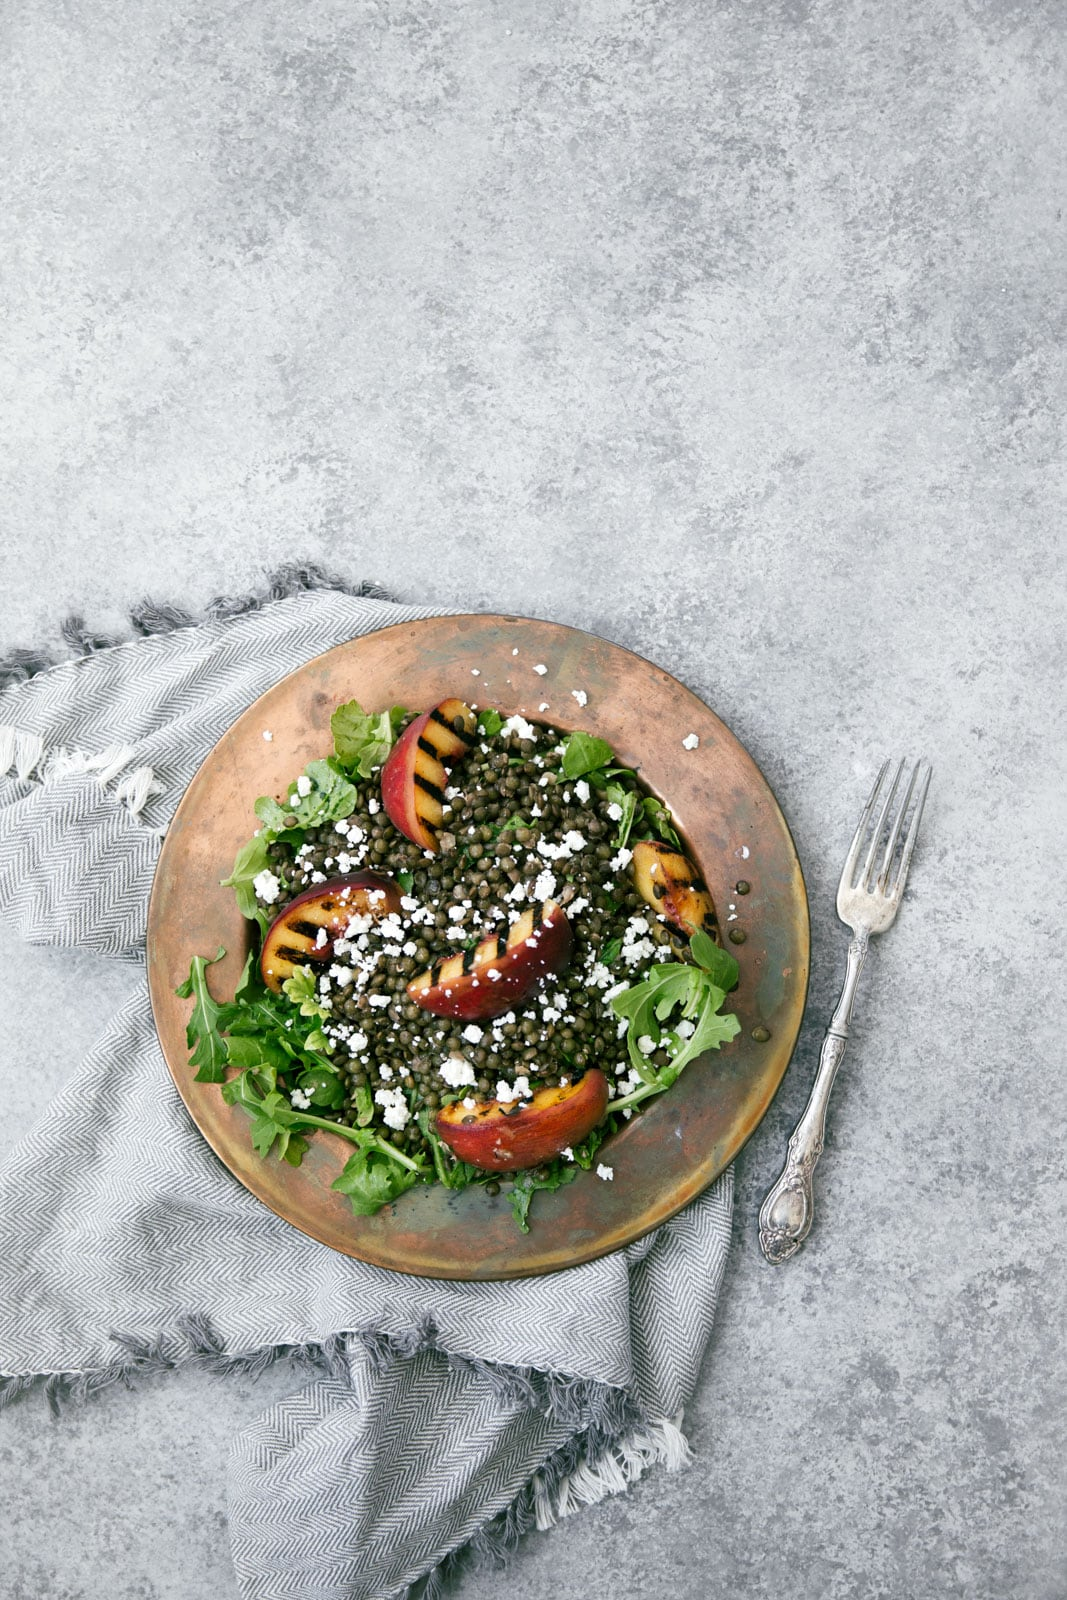 Take advantage of peach season with this green lentil salad with char-grilled peaches, goat cheese, and rosé vinaigrette.